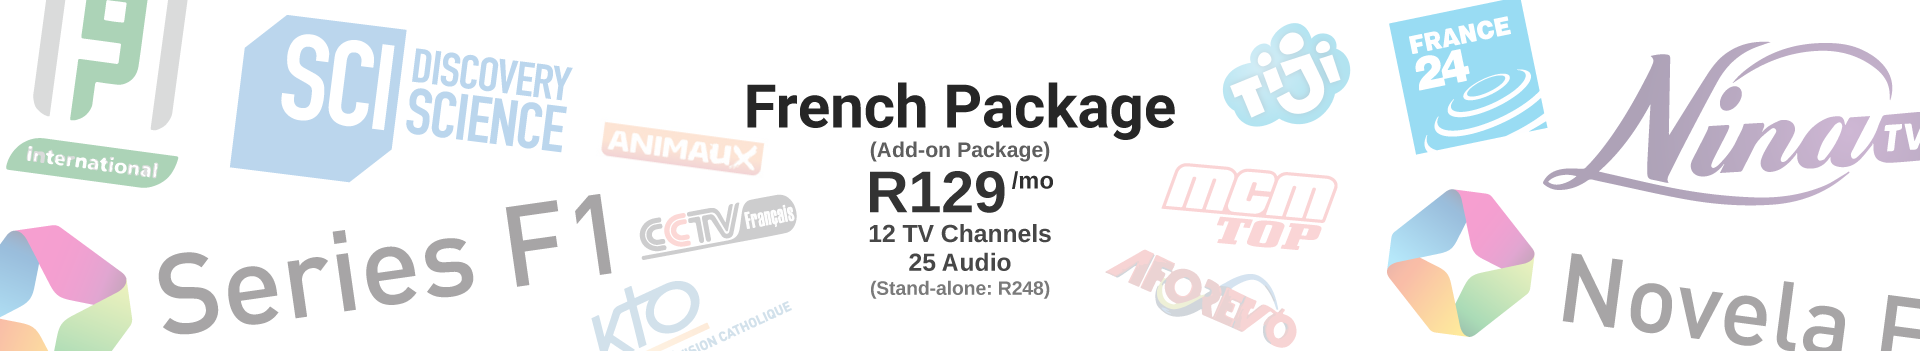 French Package: R129/mo